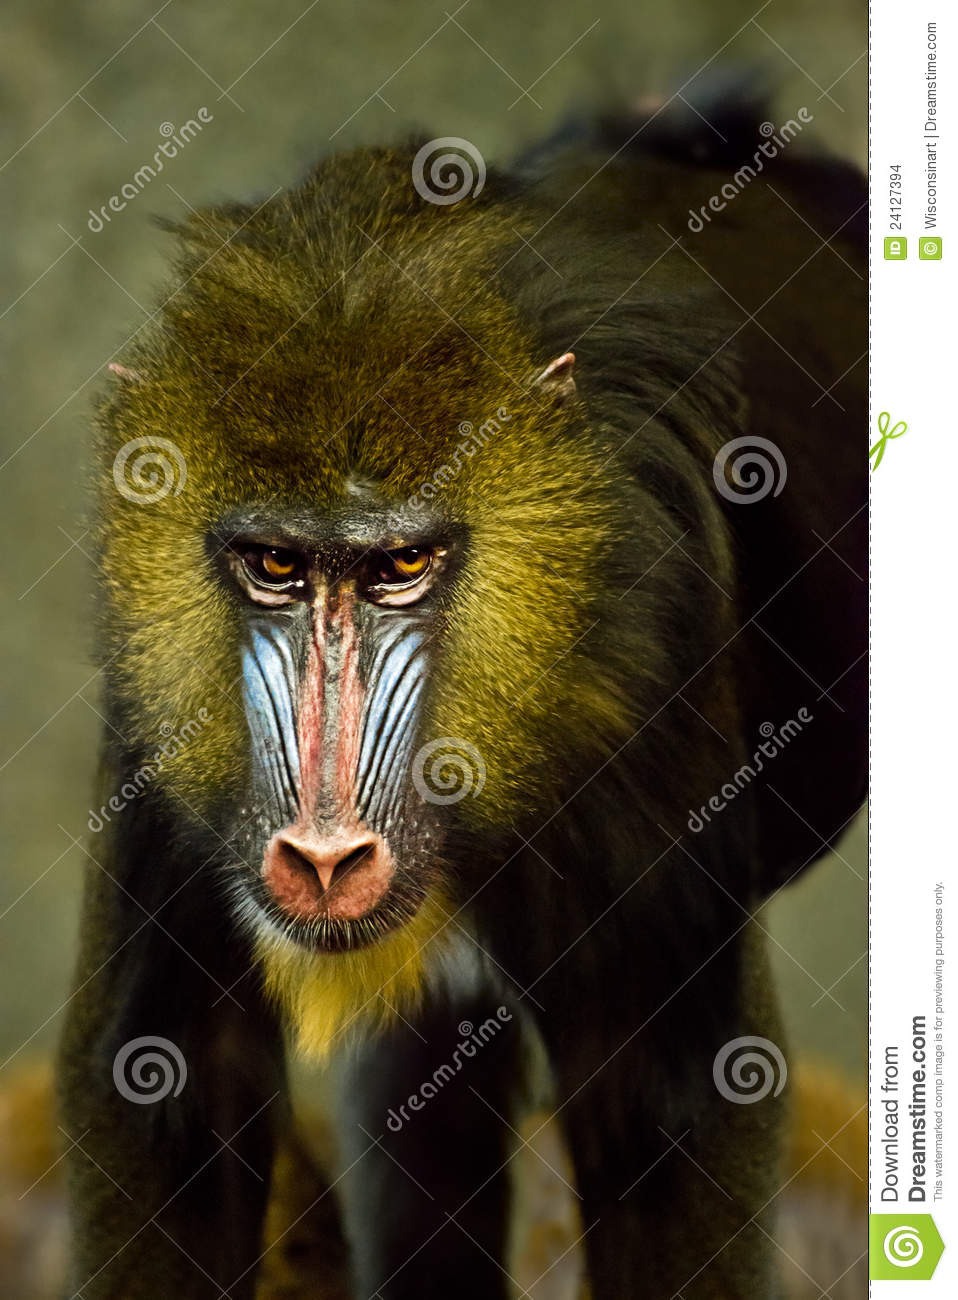 ... is a live mammal that resides in a zoo. Part of the baboon family